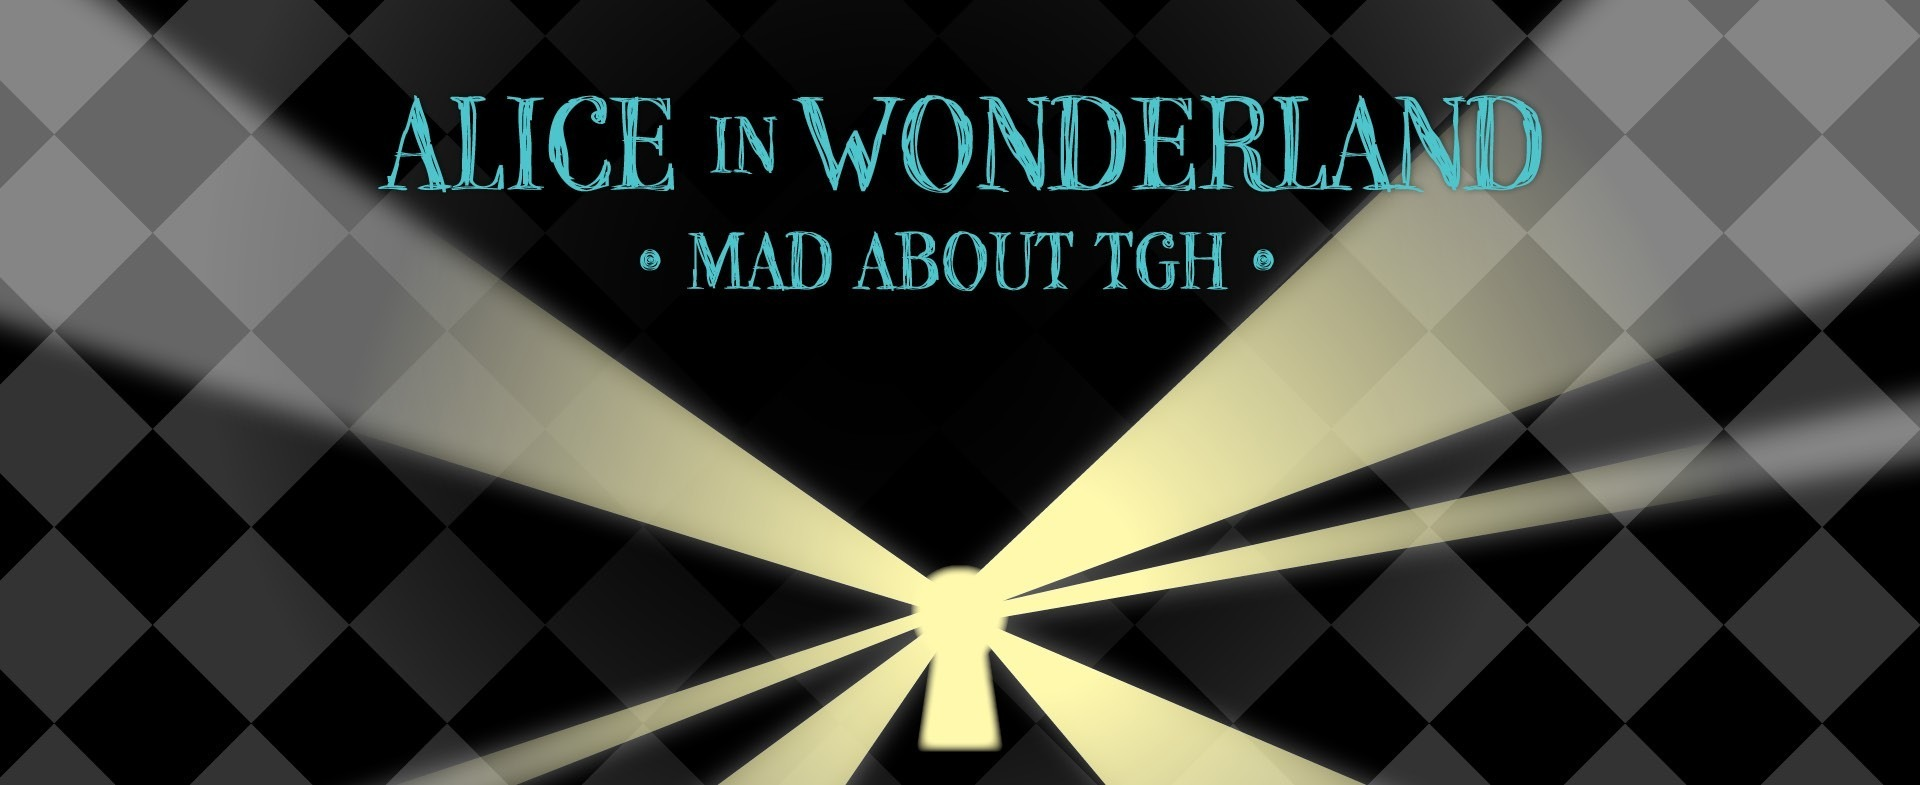 2018 TGH Foundation Annual Gala - Alice in Wonderland: Mad about TGH